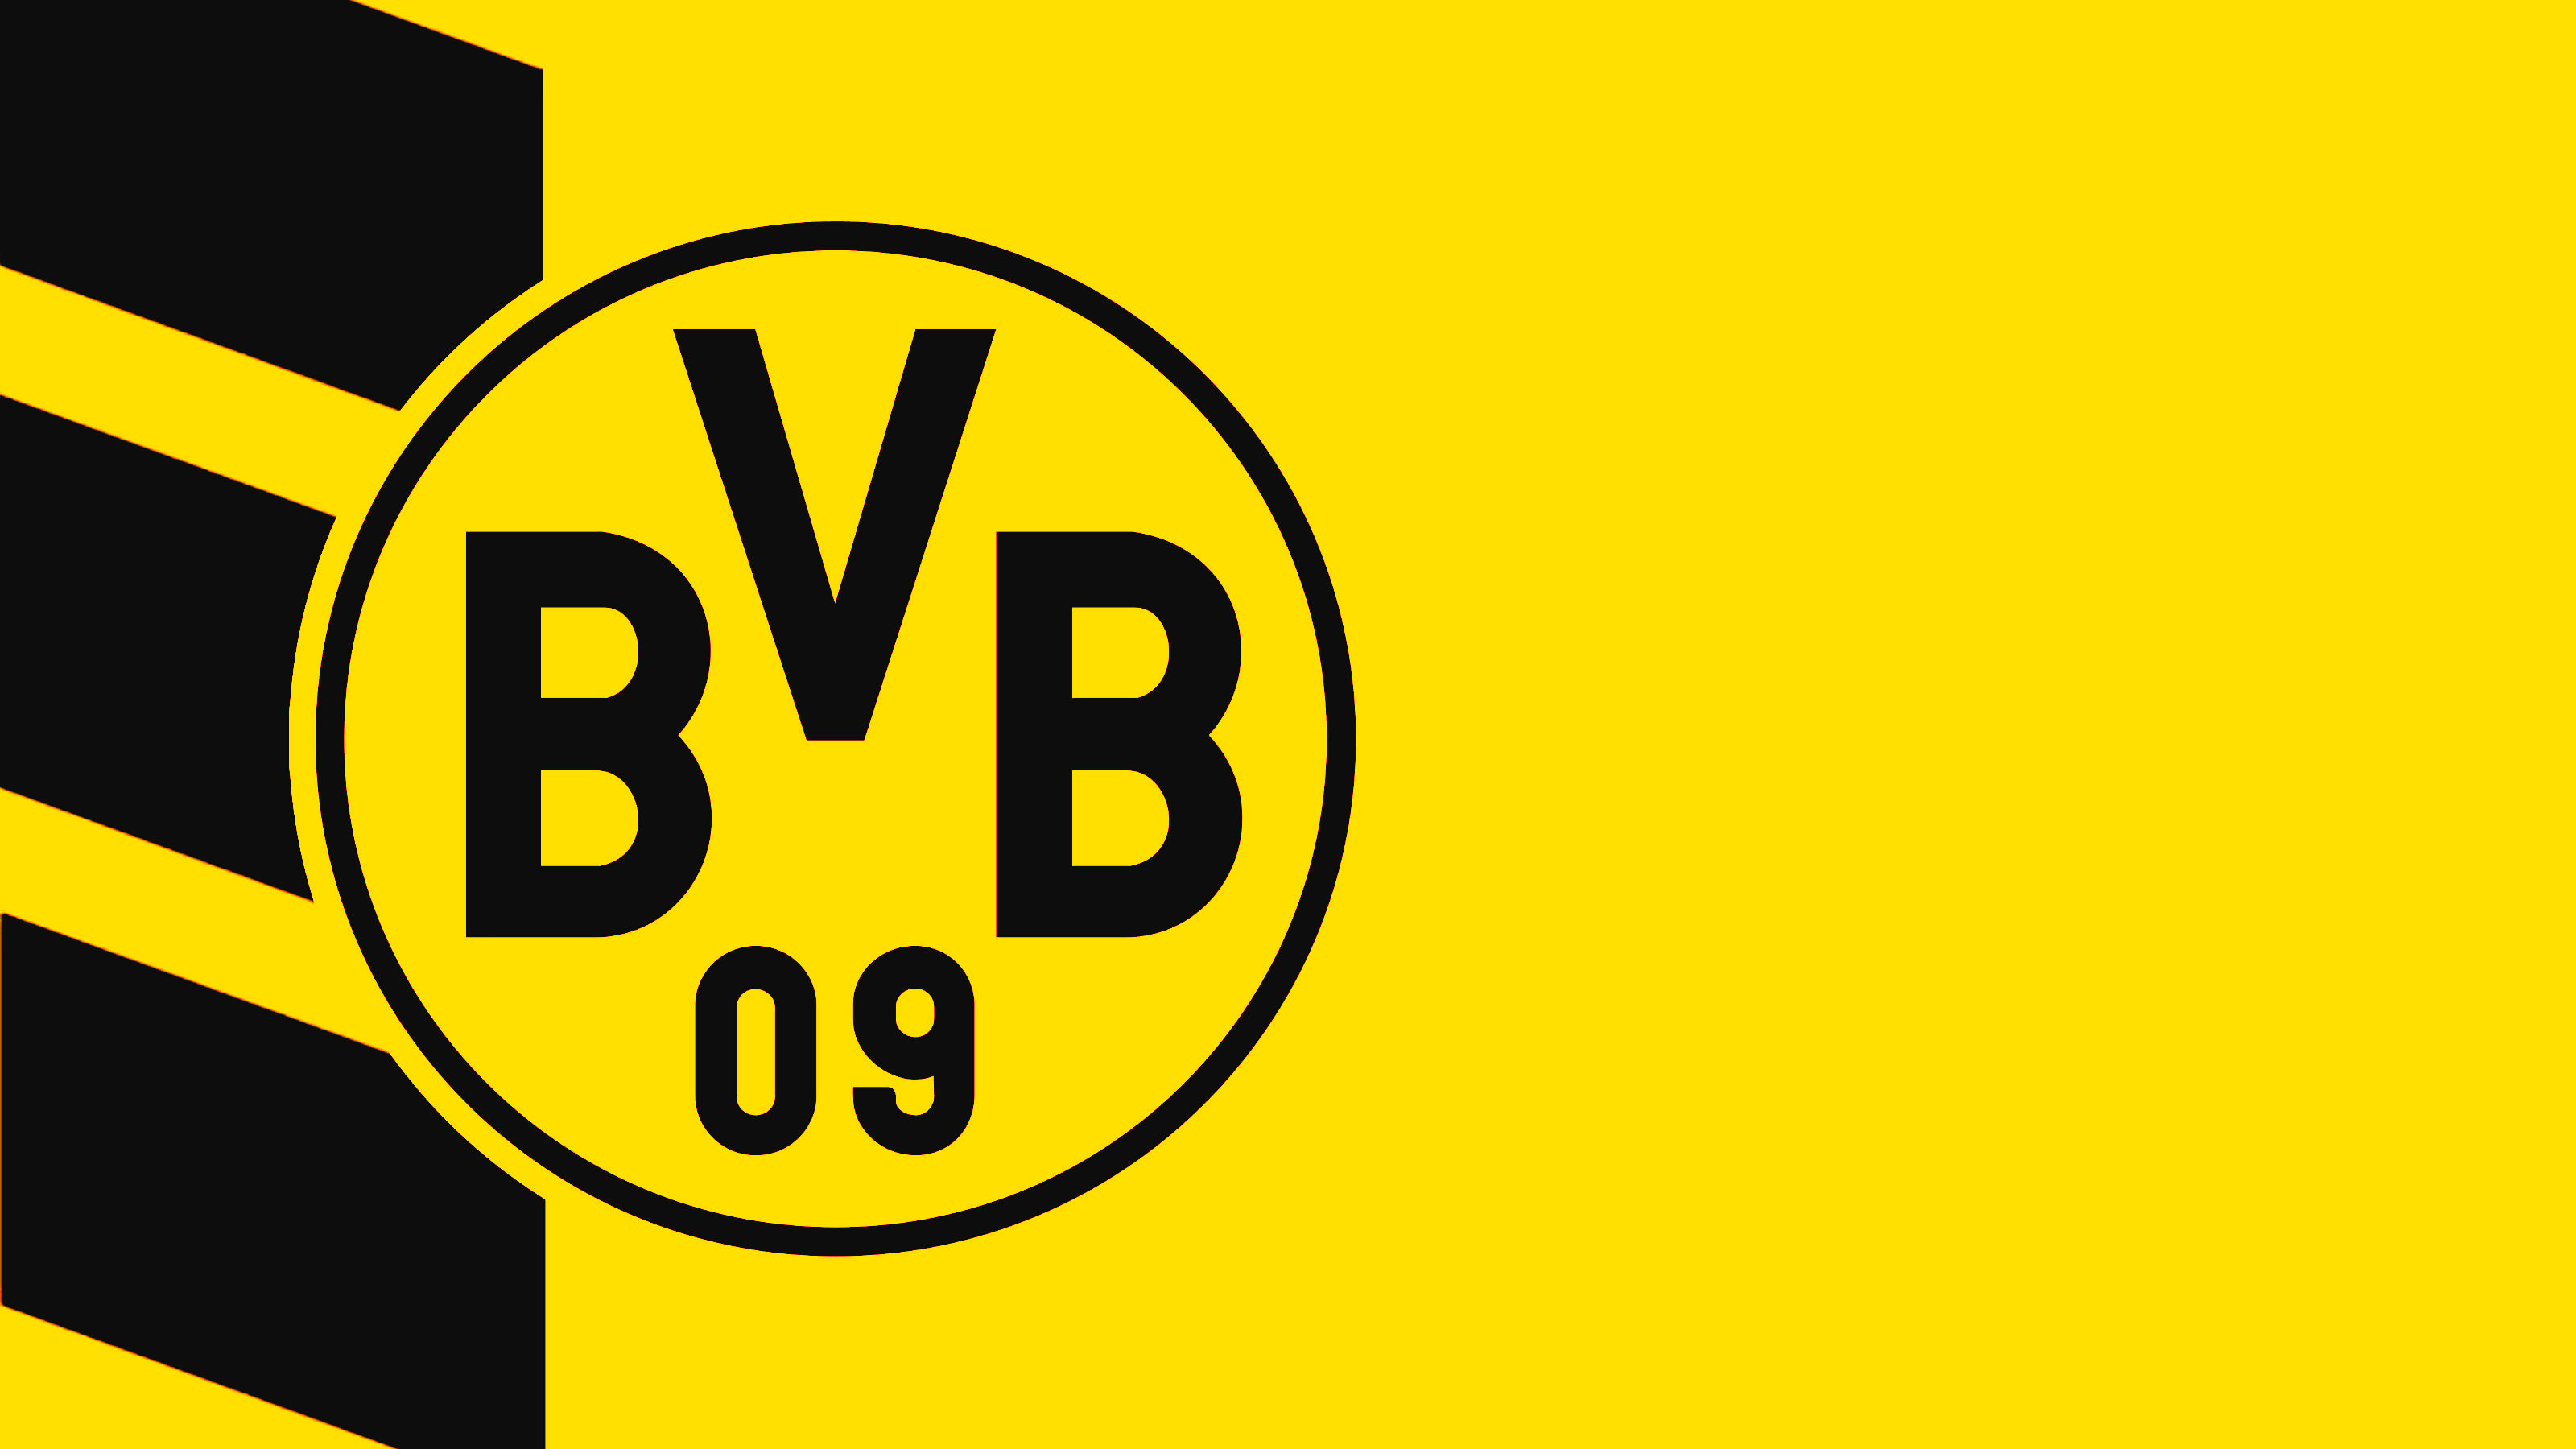 99 Borussia Dortmund Wallpapers On Wallpapersafari